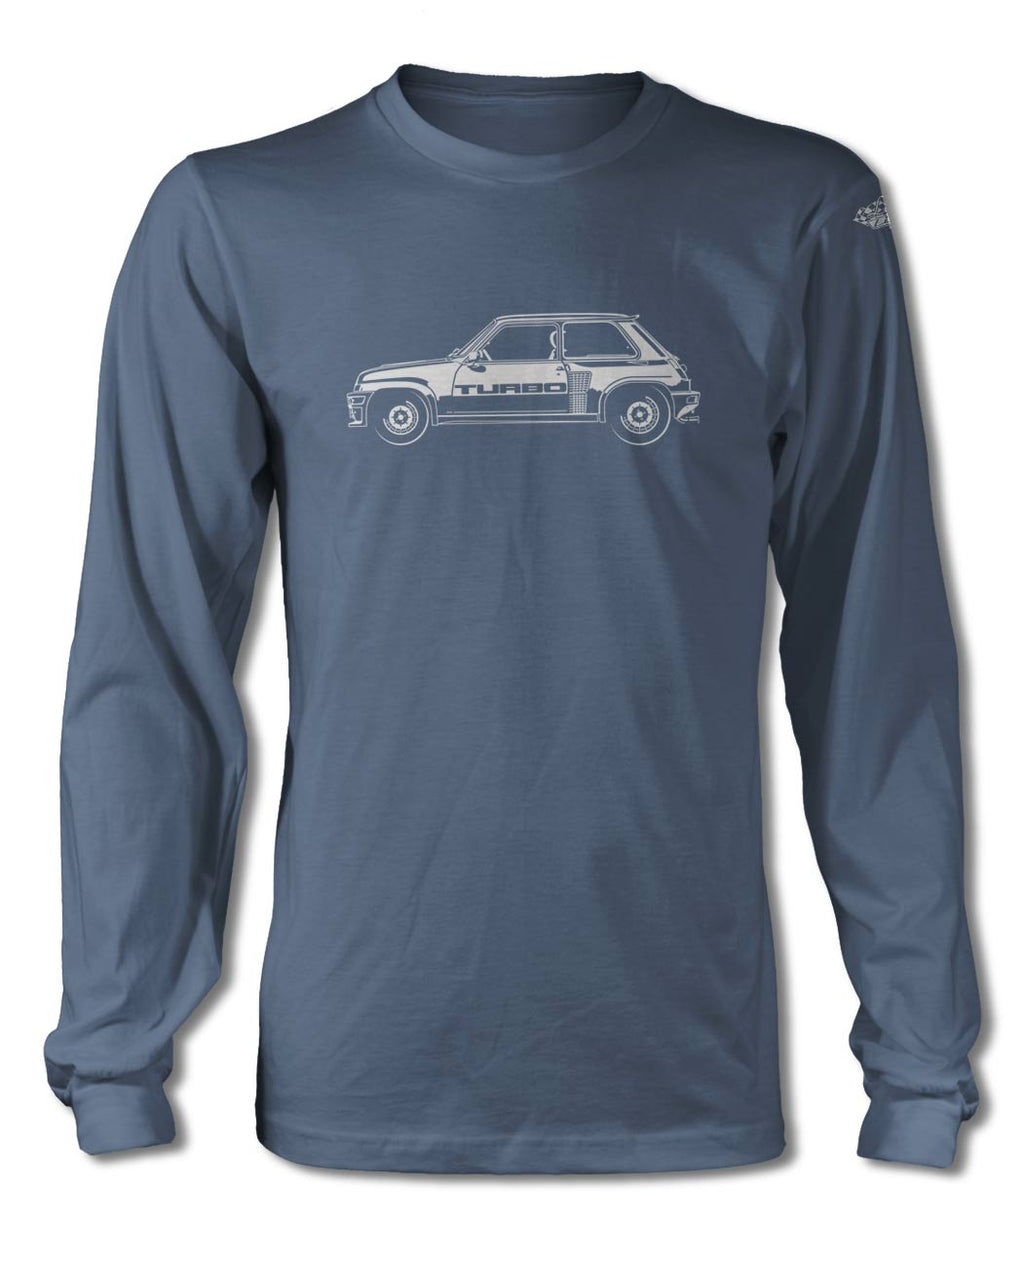 Renault R5 Turbo 1980 – 1986 T-Shirt - Long Sleeves - Side View